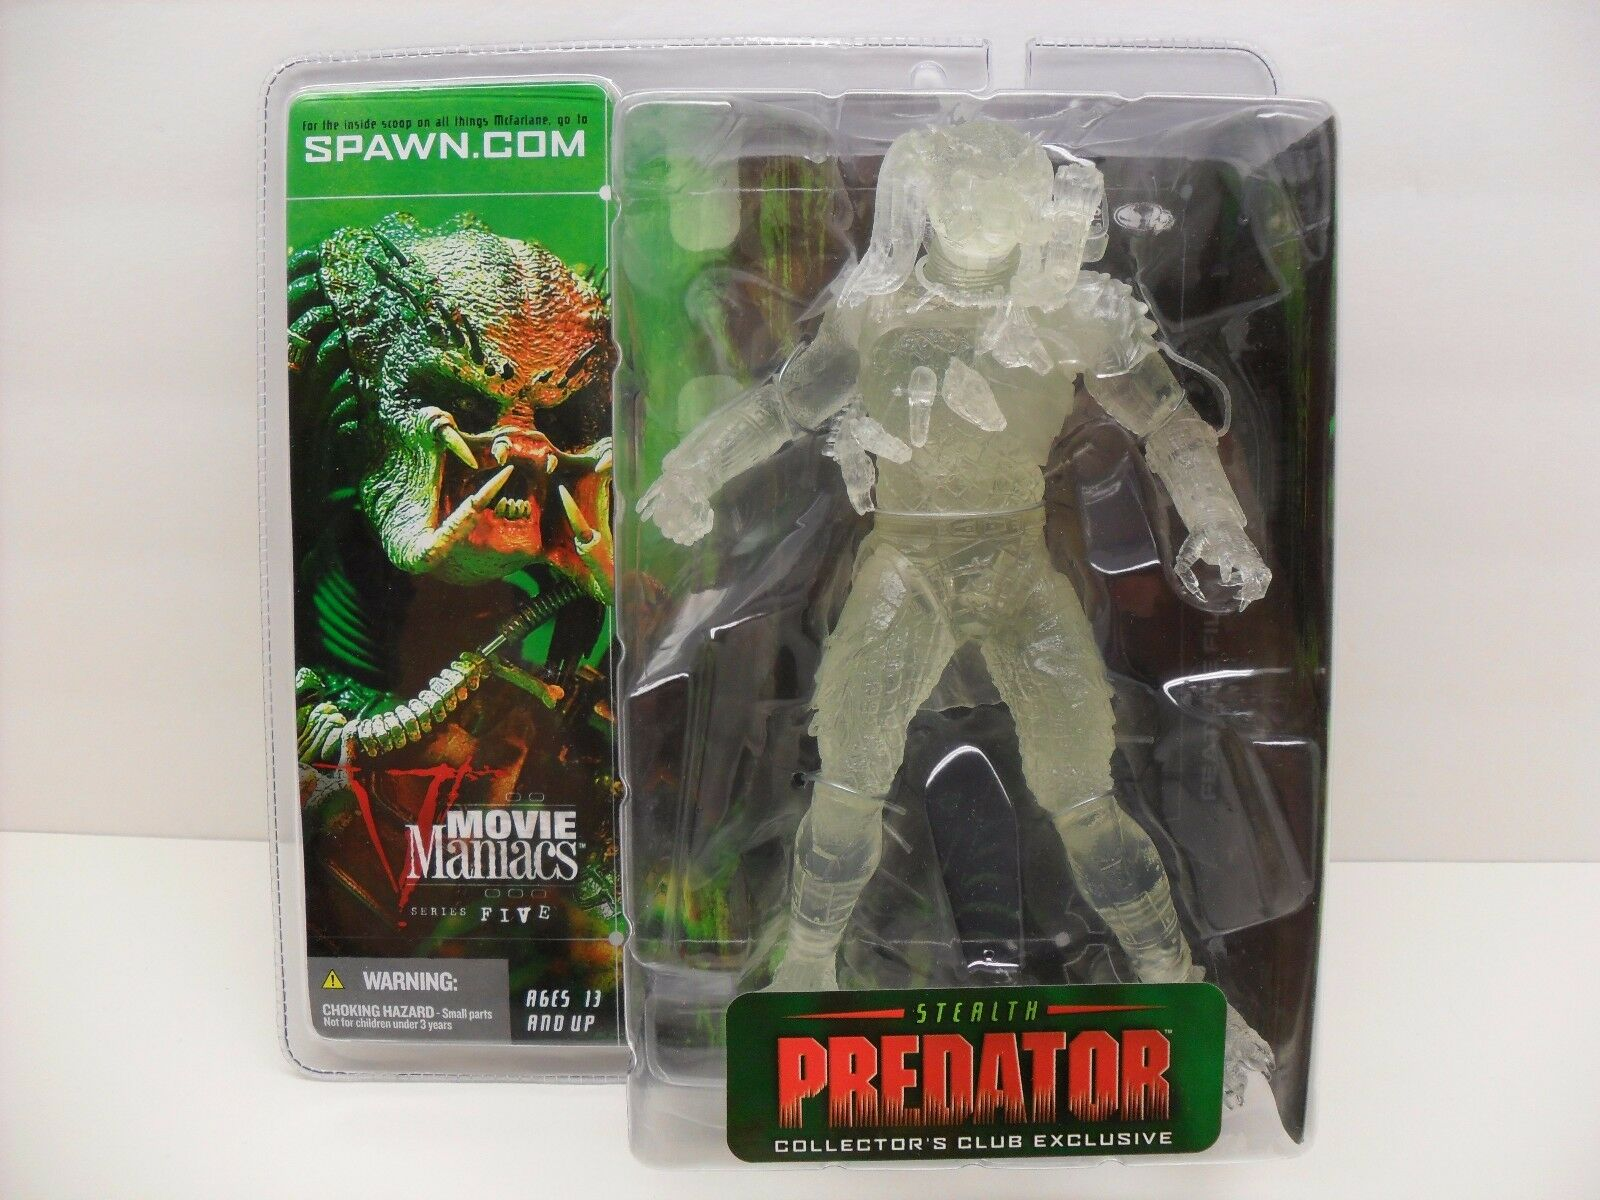 '03 McFarlane Spawn Movie Maniacs 5  Stealth Protator  Collectors Club Exclusive